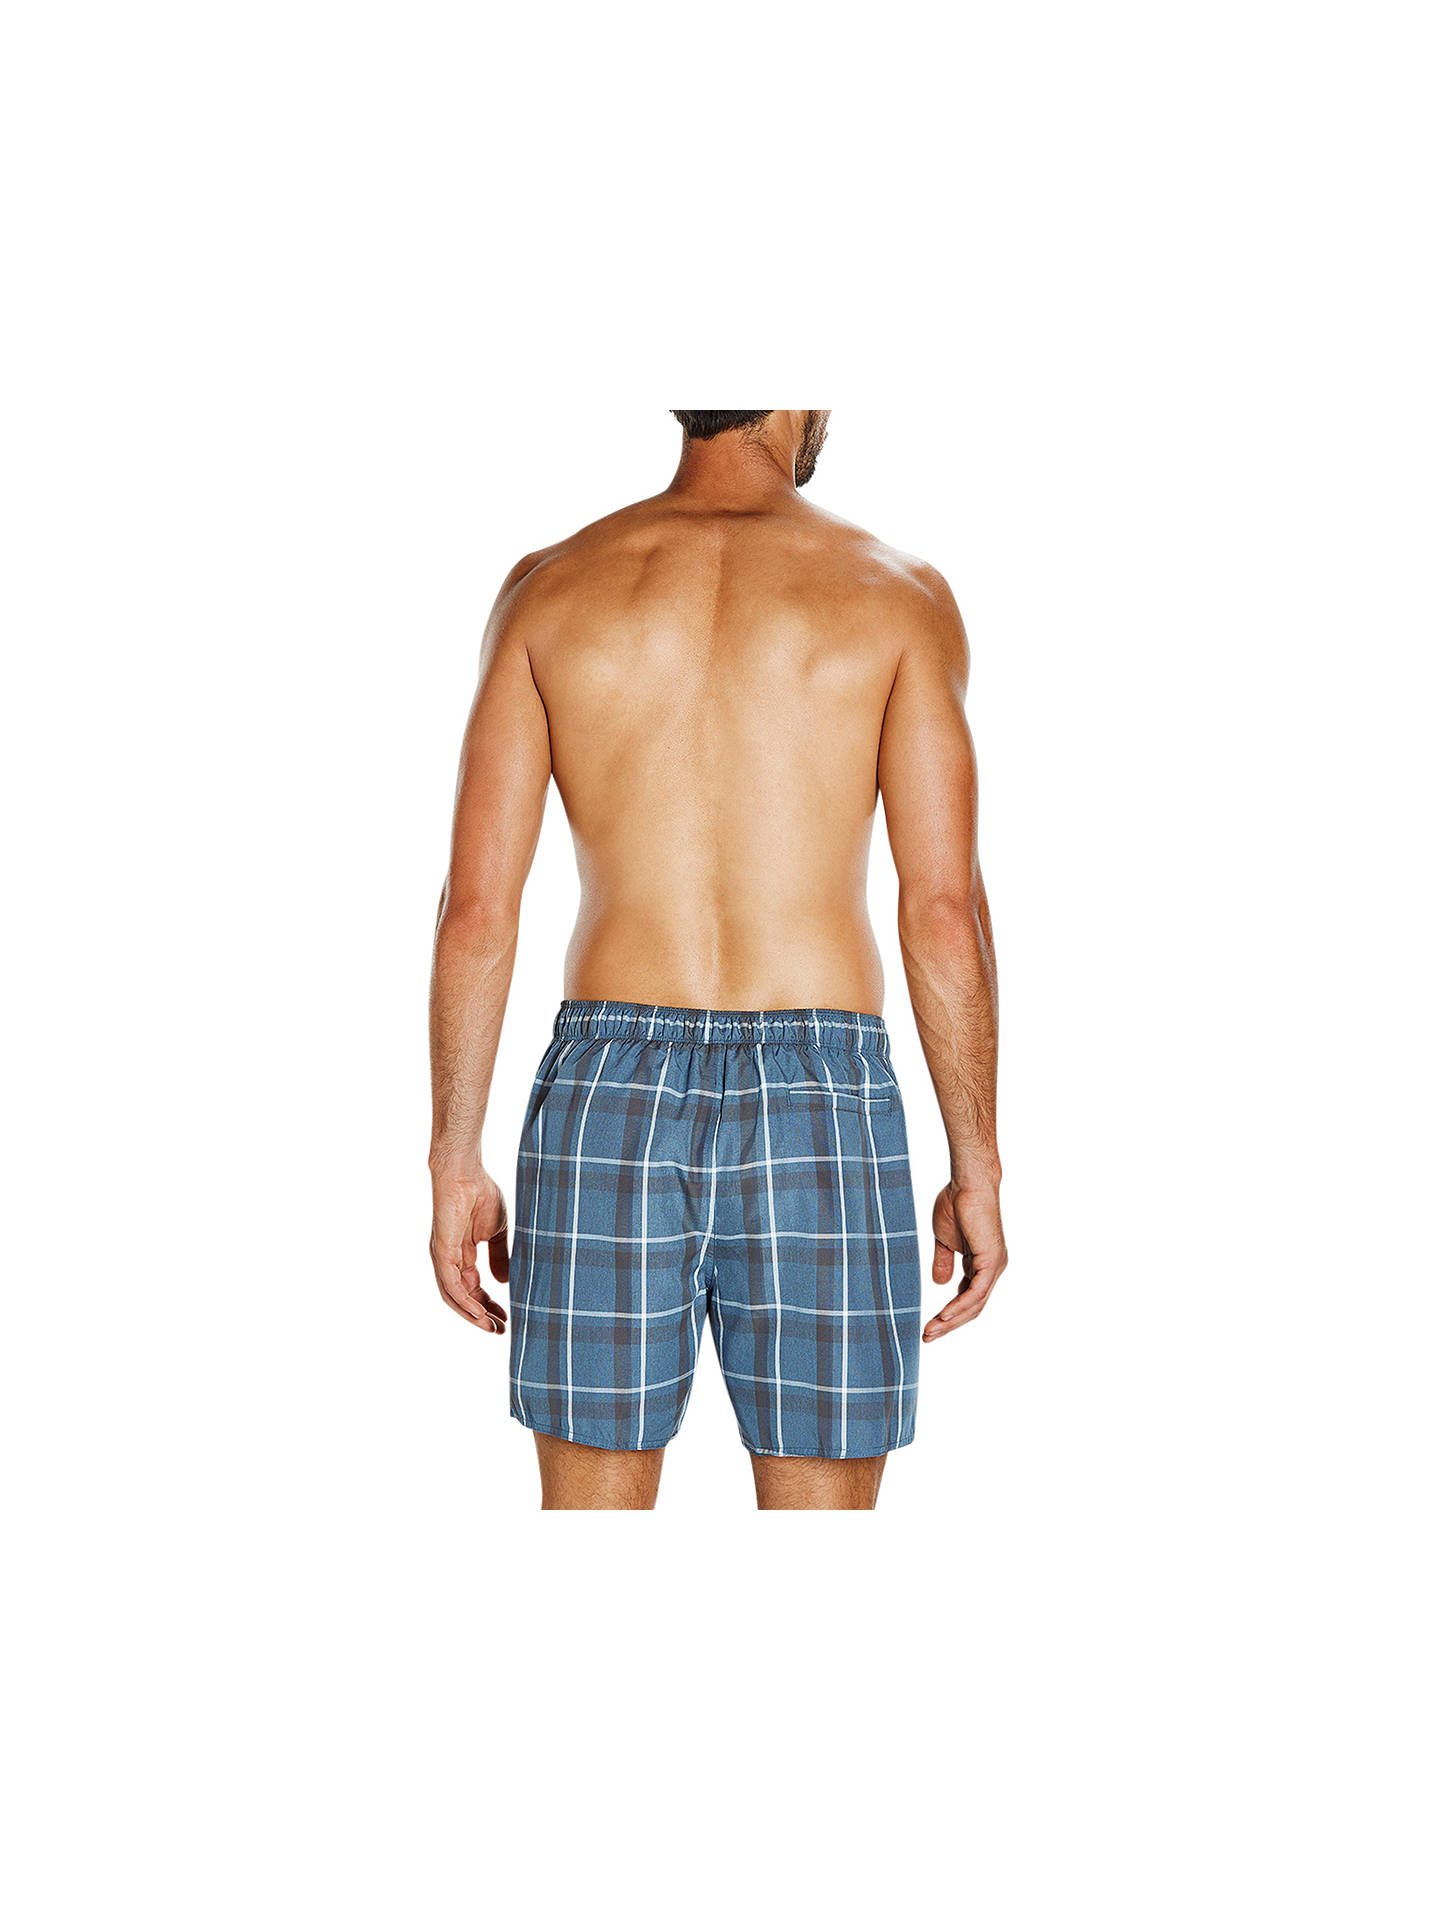 "BuySpeedo Check Leisure 18"" Watershort Swim Shorts, Grey/Navy/White, S Online at johnlewis.com"